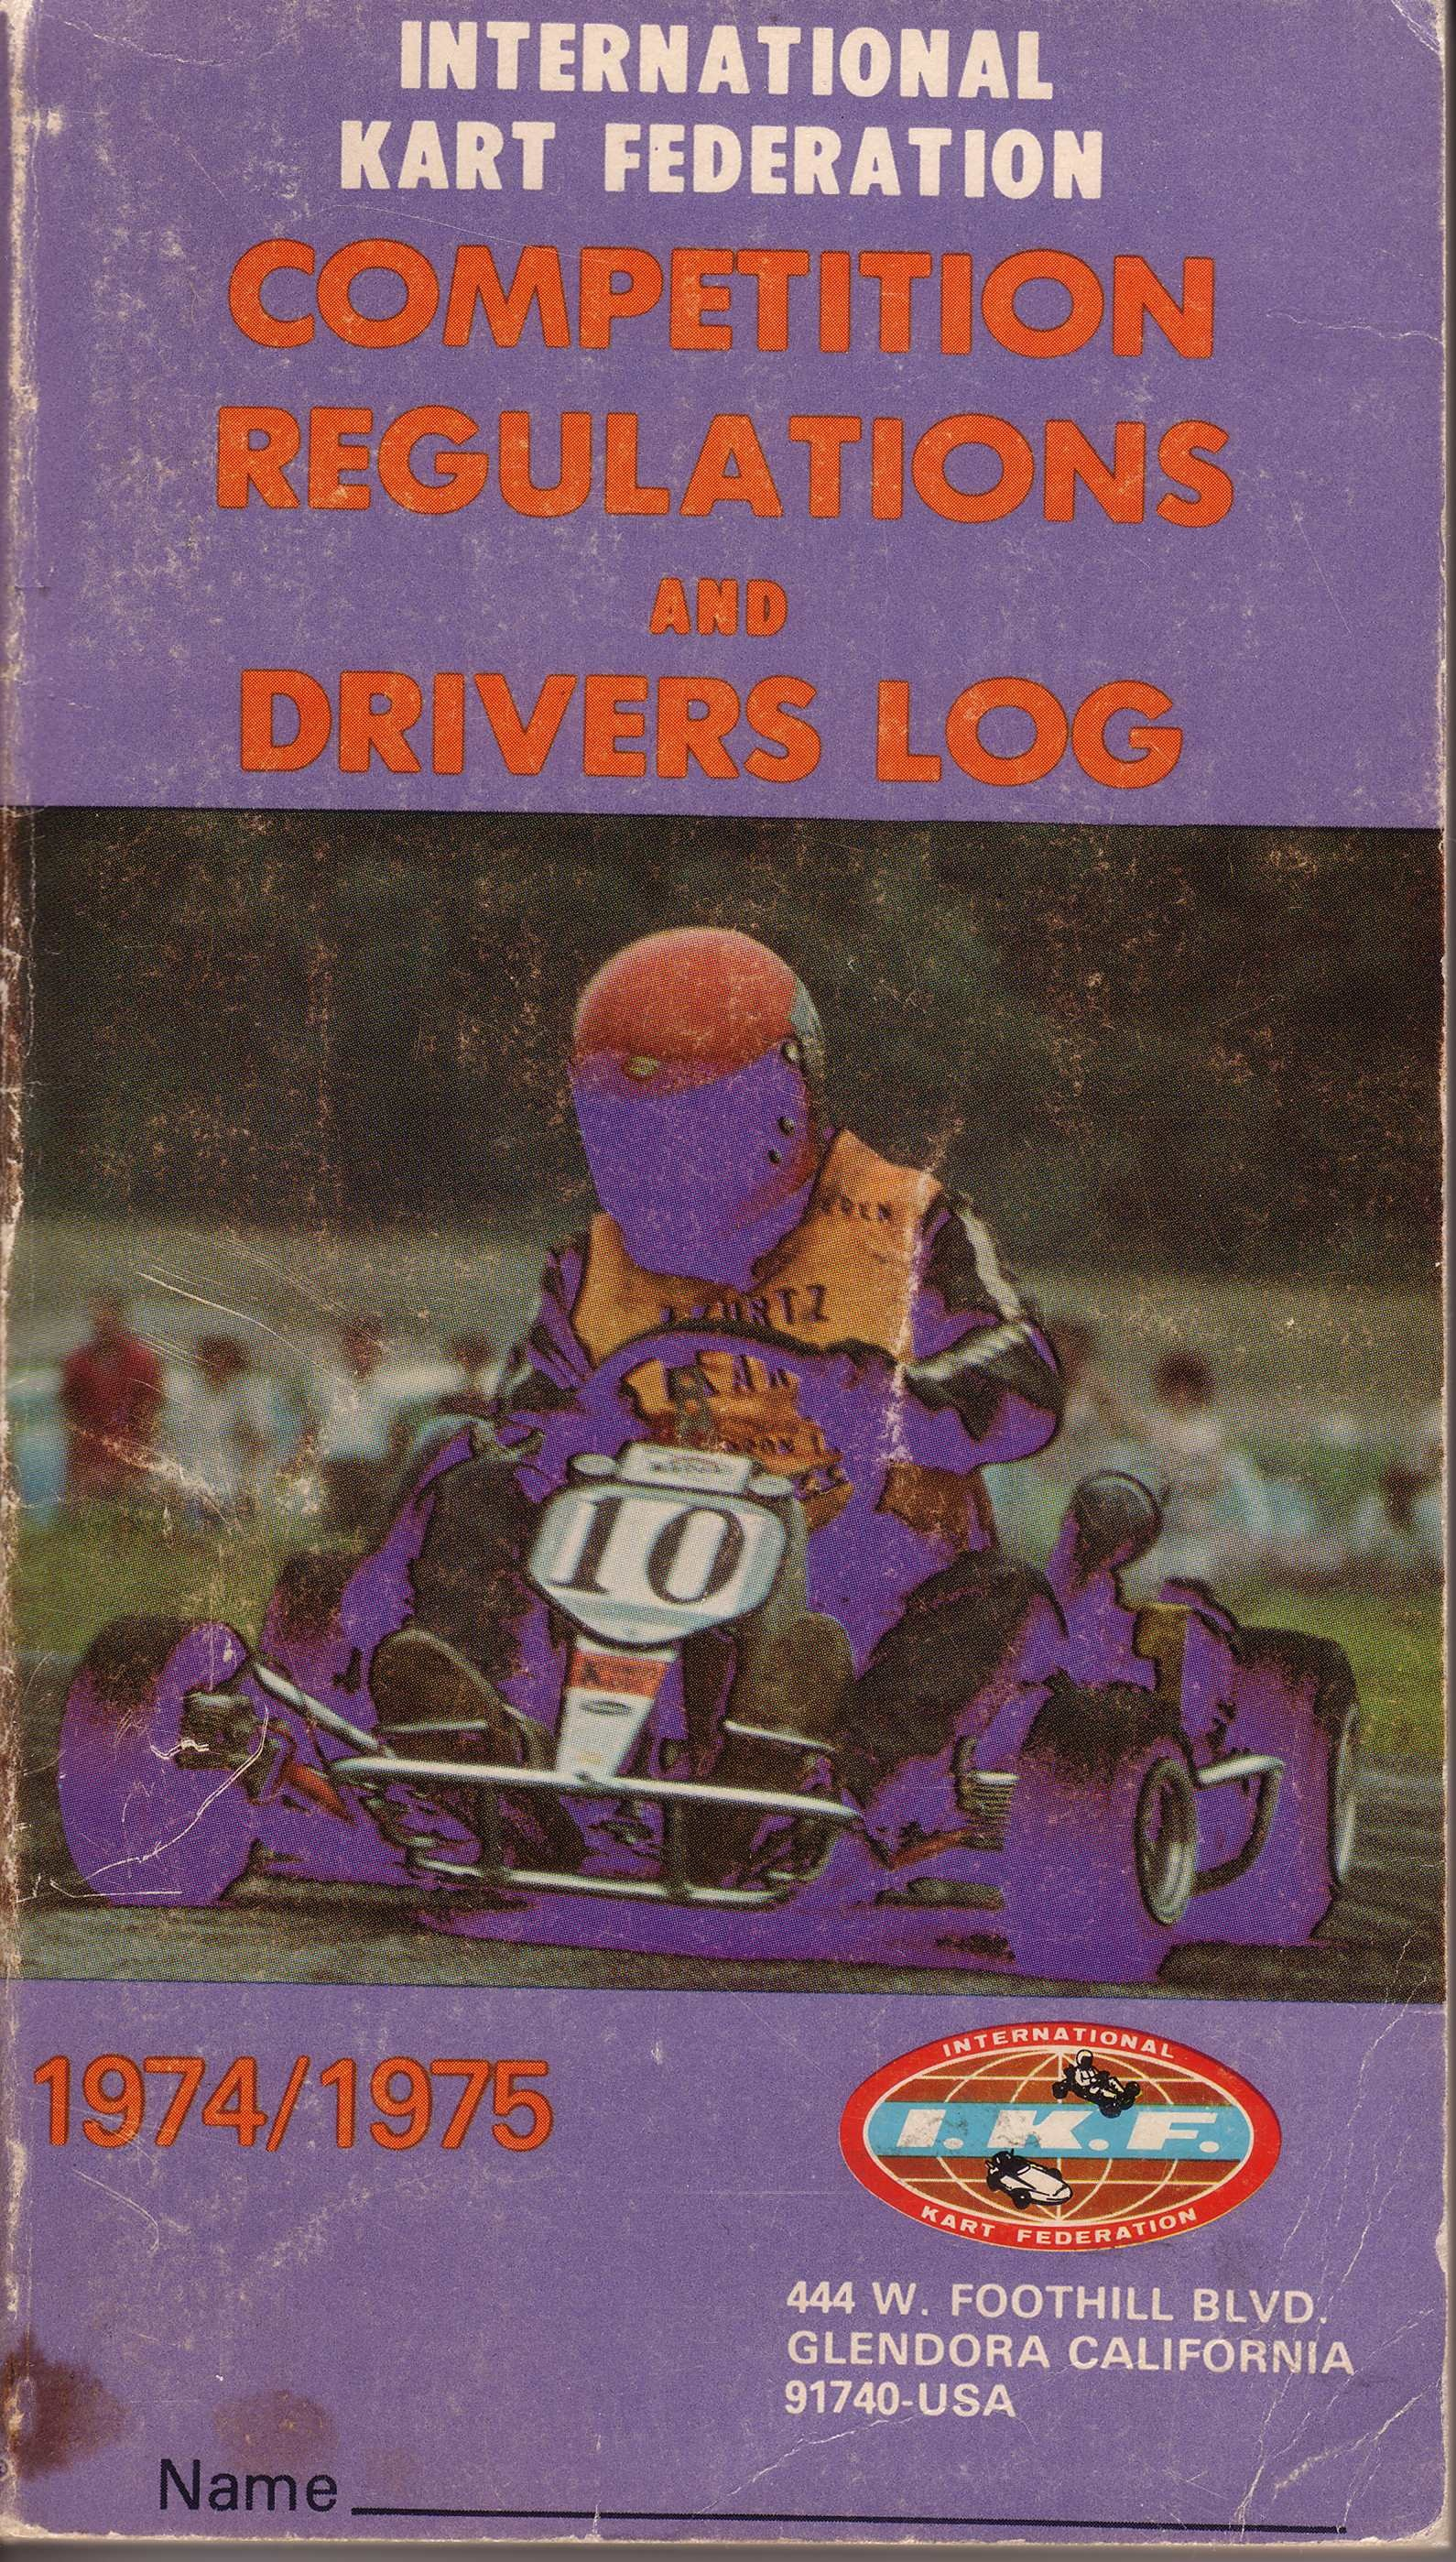 1974/1975 Rule Book Cover